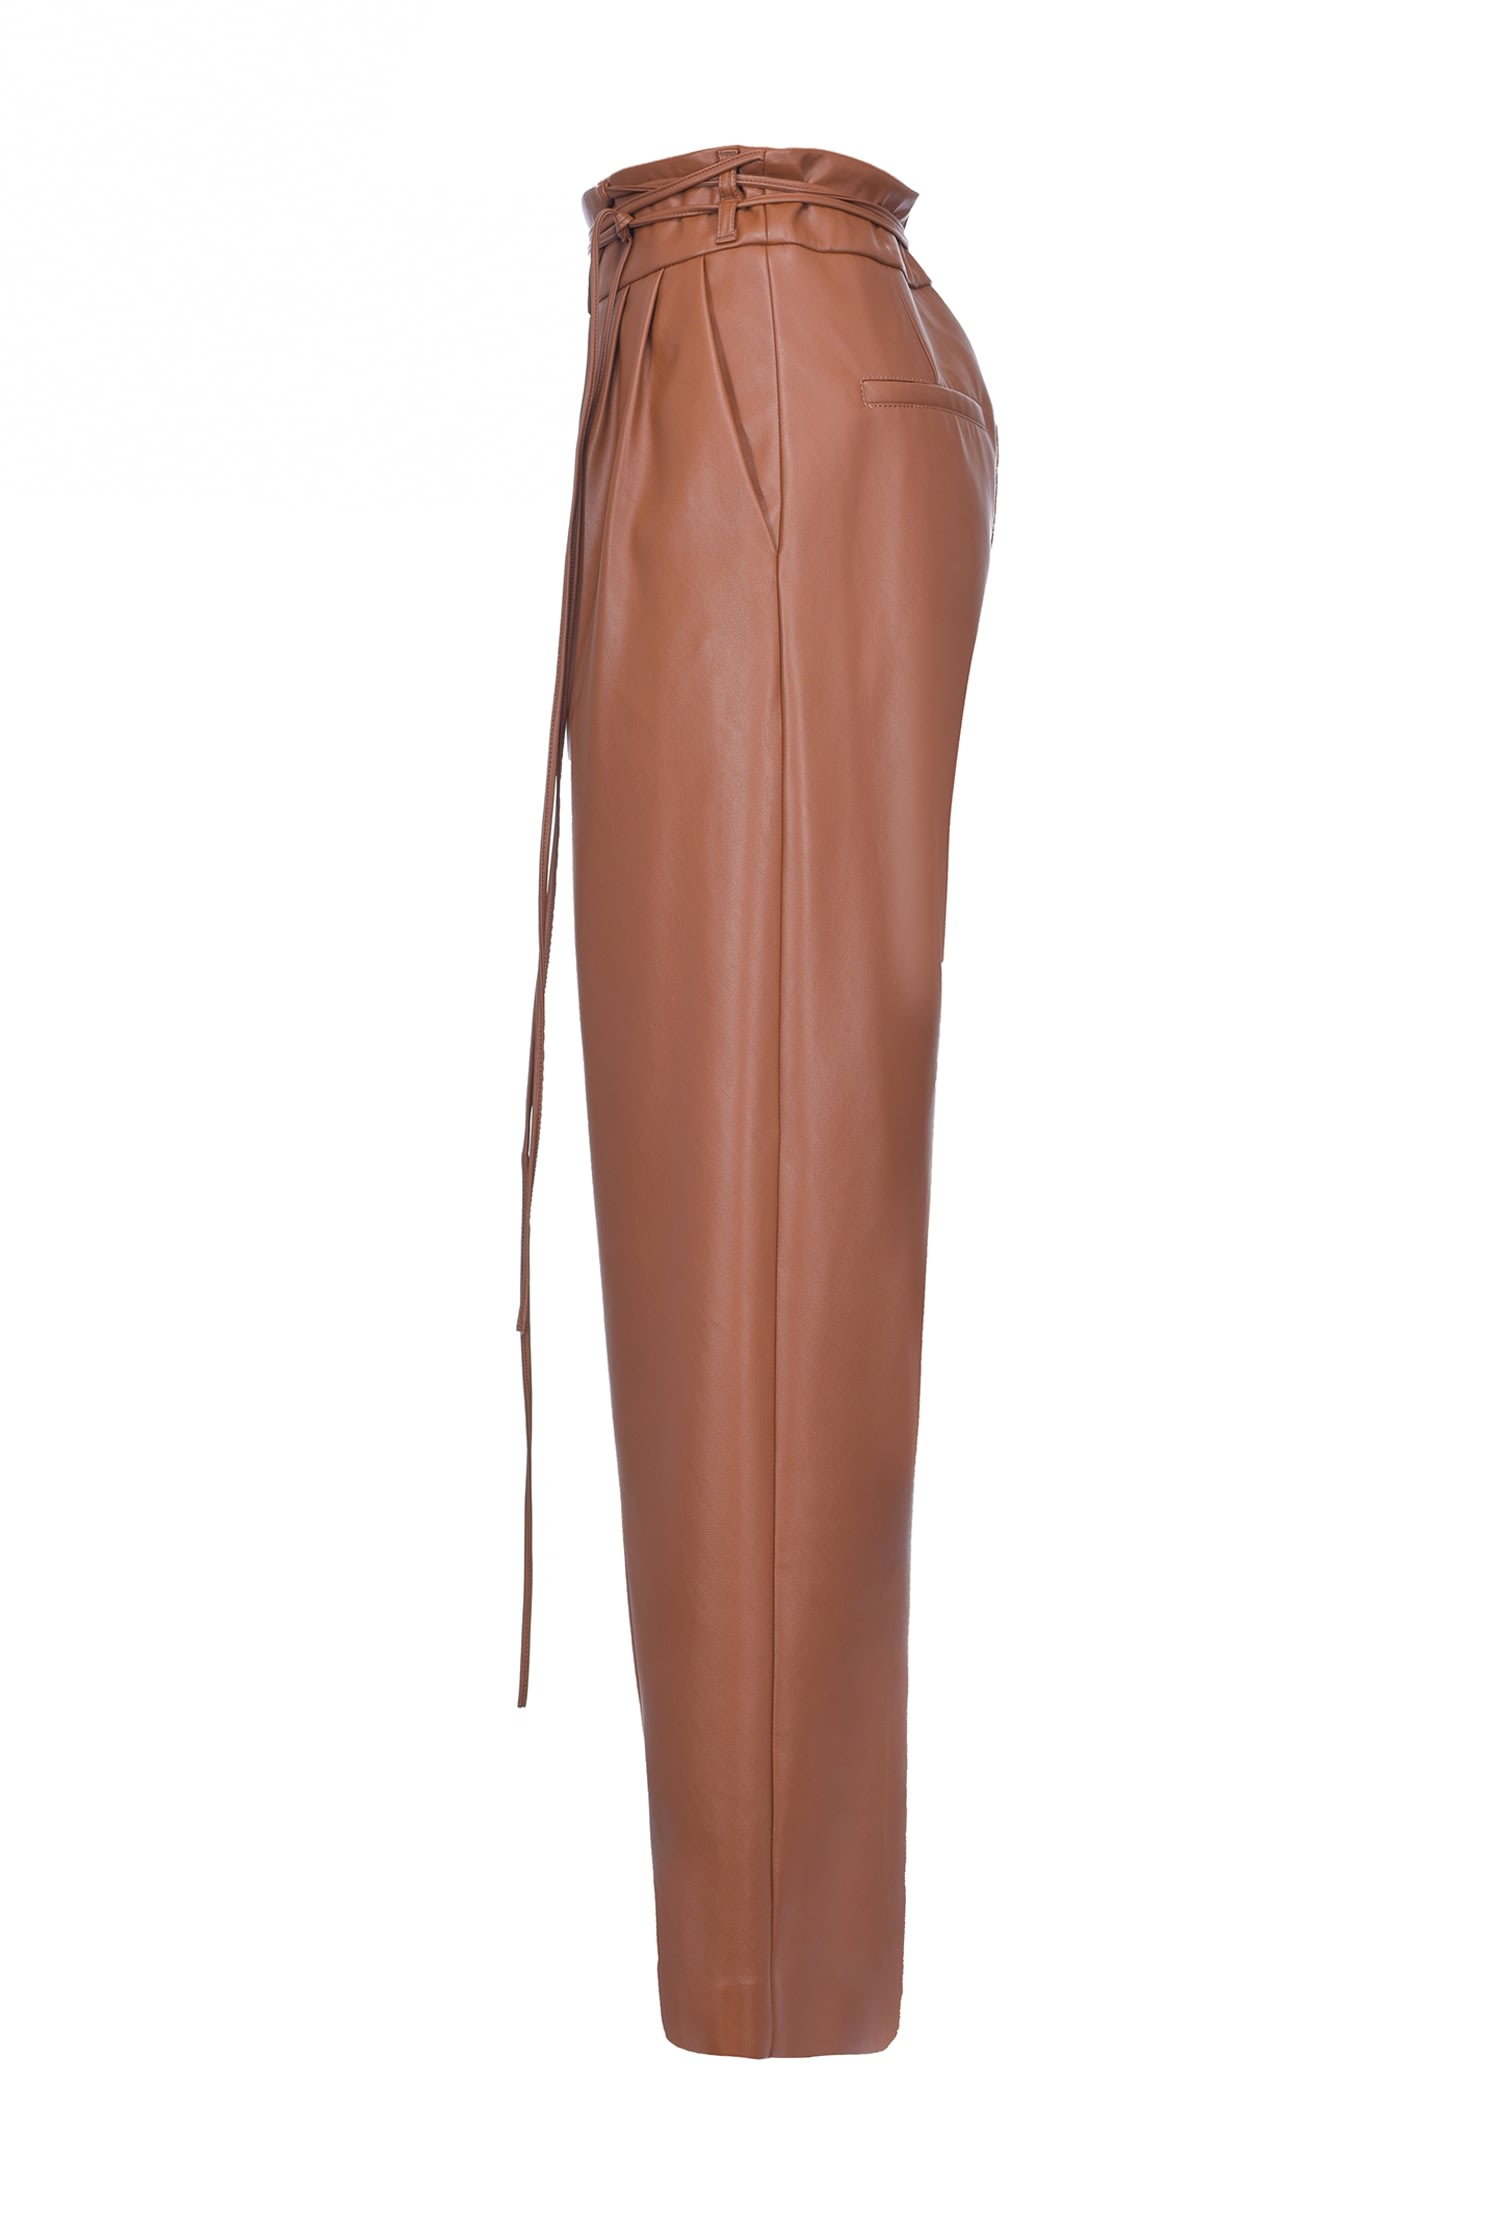 Leather-look Trousers With Narrow Belt Marrone Noce